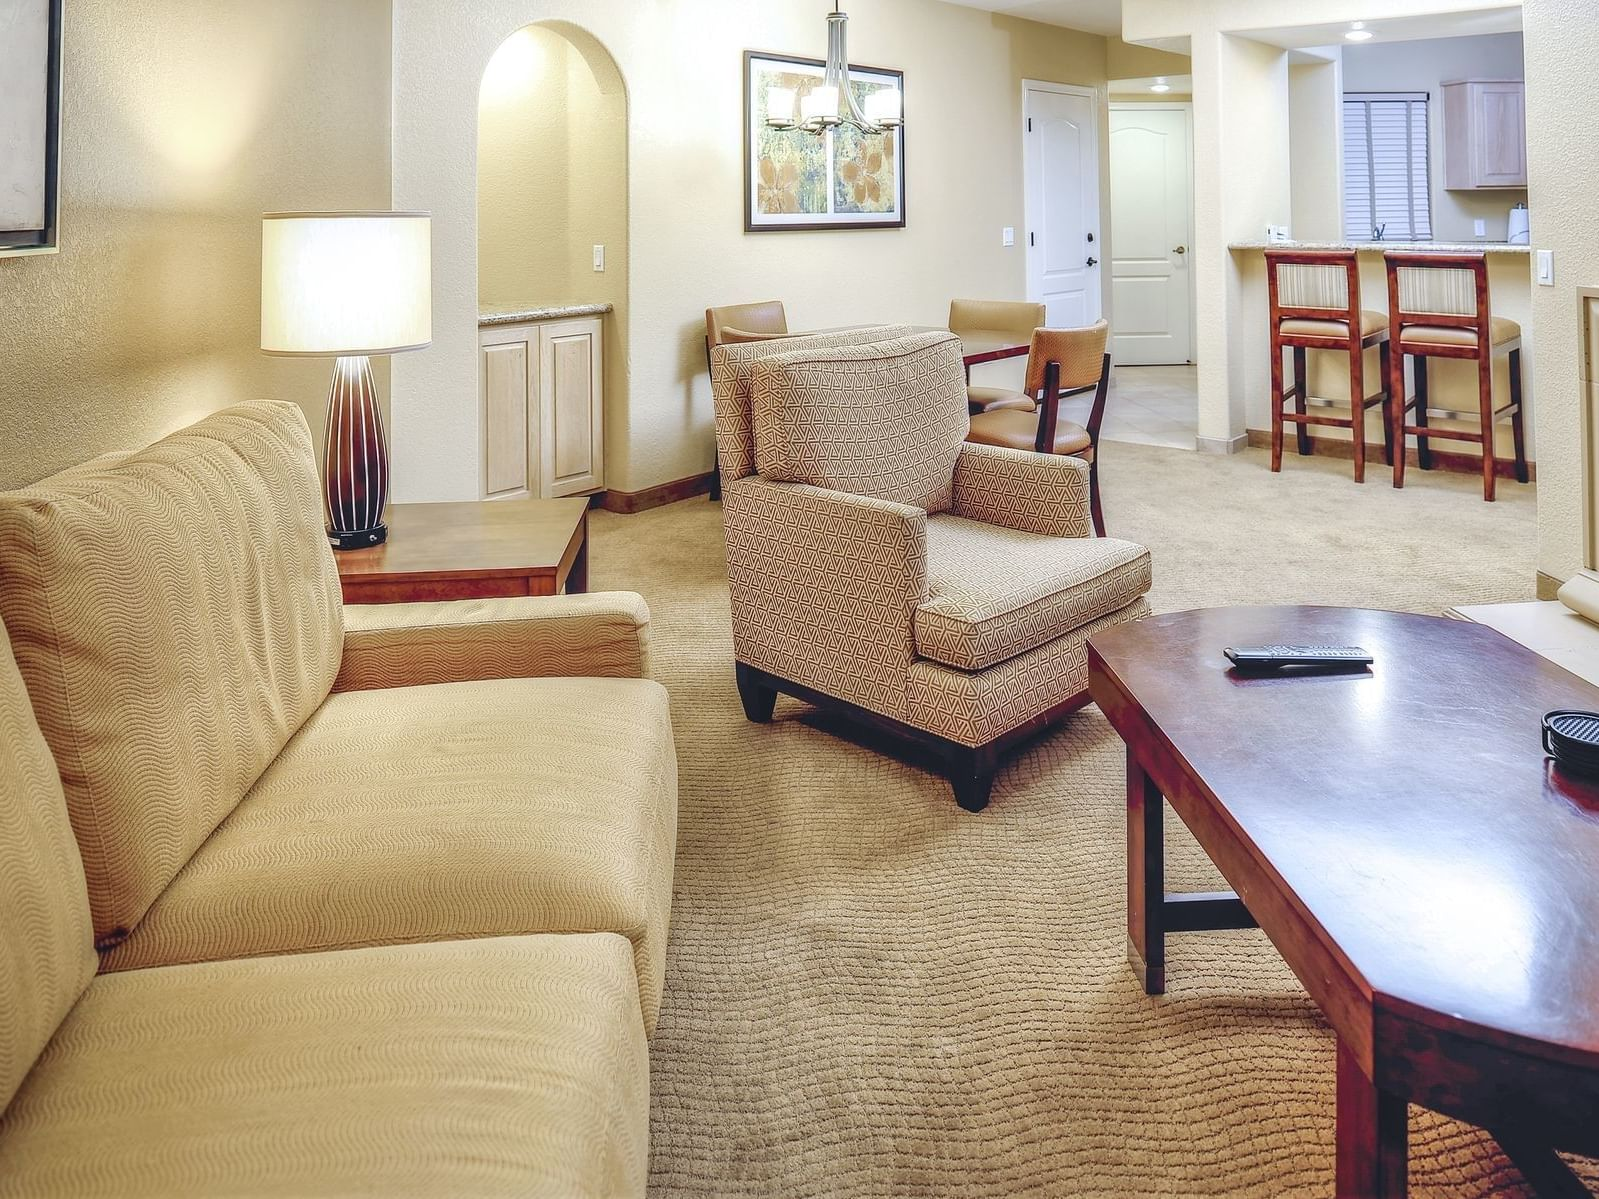 Comfortable Living are of Two Bedroom Suite at Diamond Sedona Portal Hotel